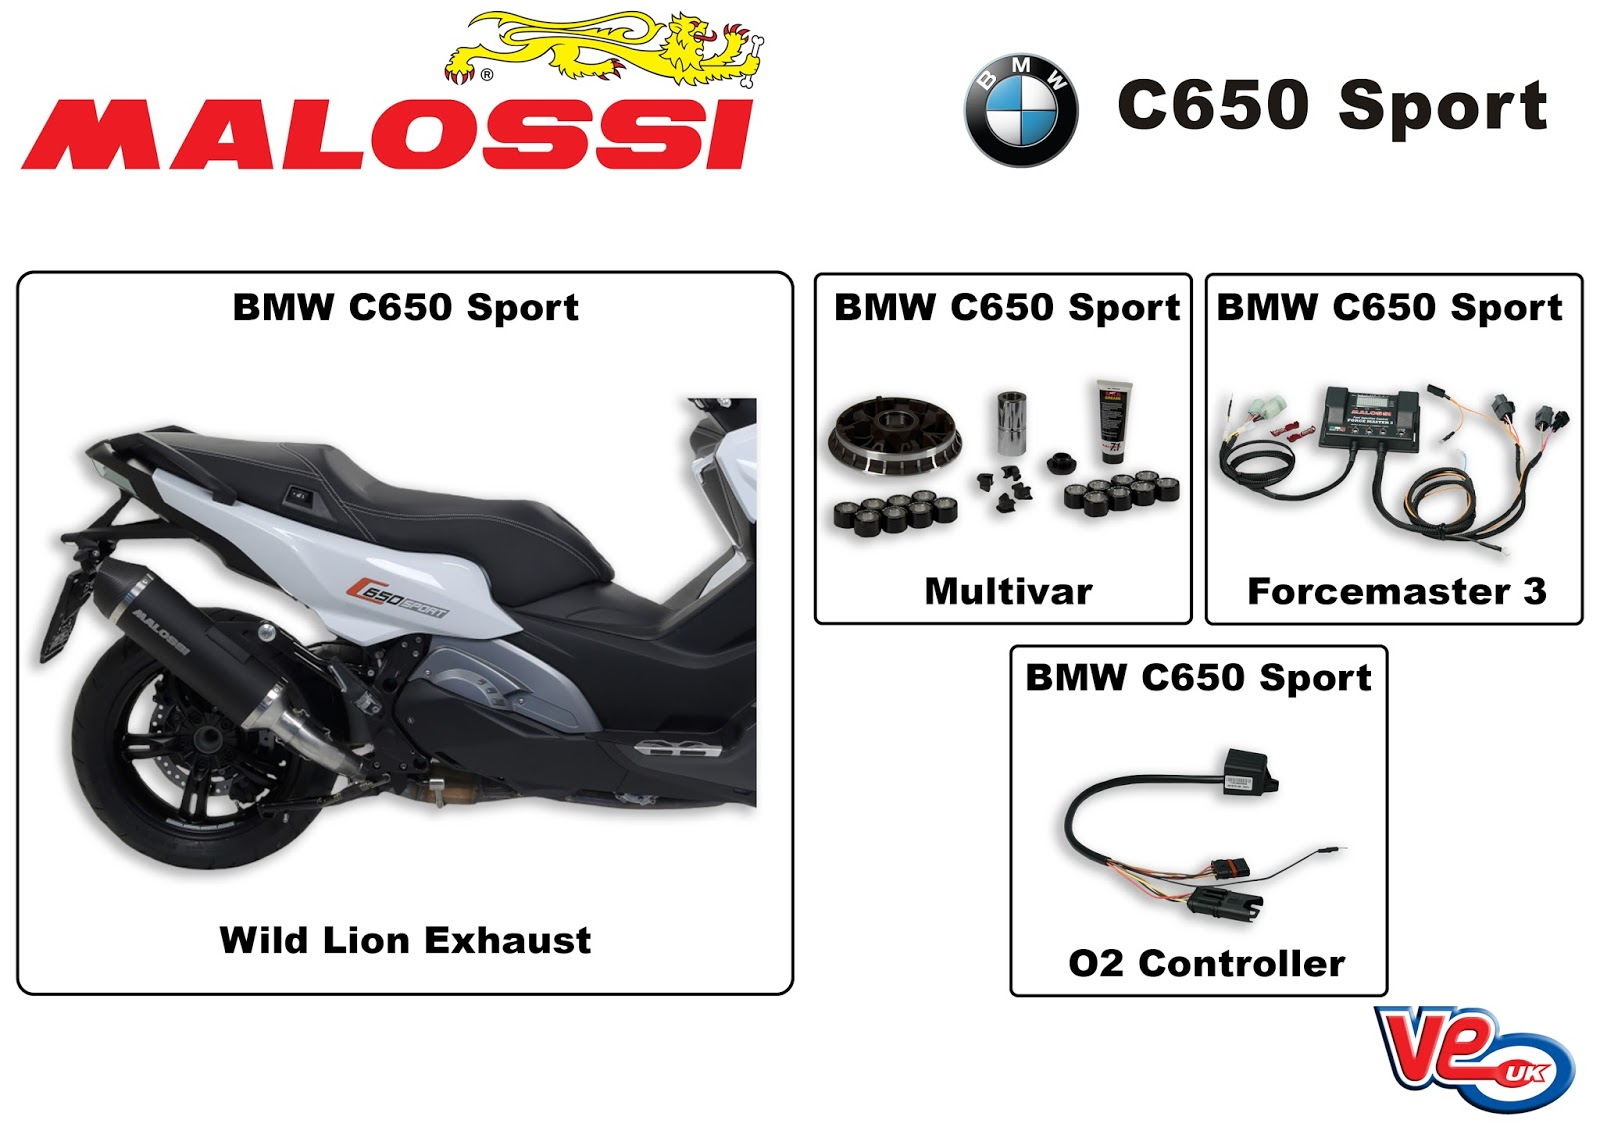 ve scooter spares new malossi tuning products for bmw. Black Bedroom Furniture Sets. Home Design Ideas